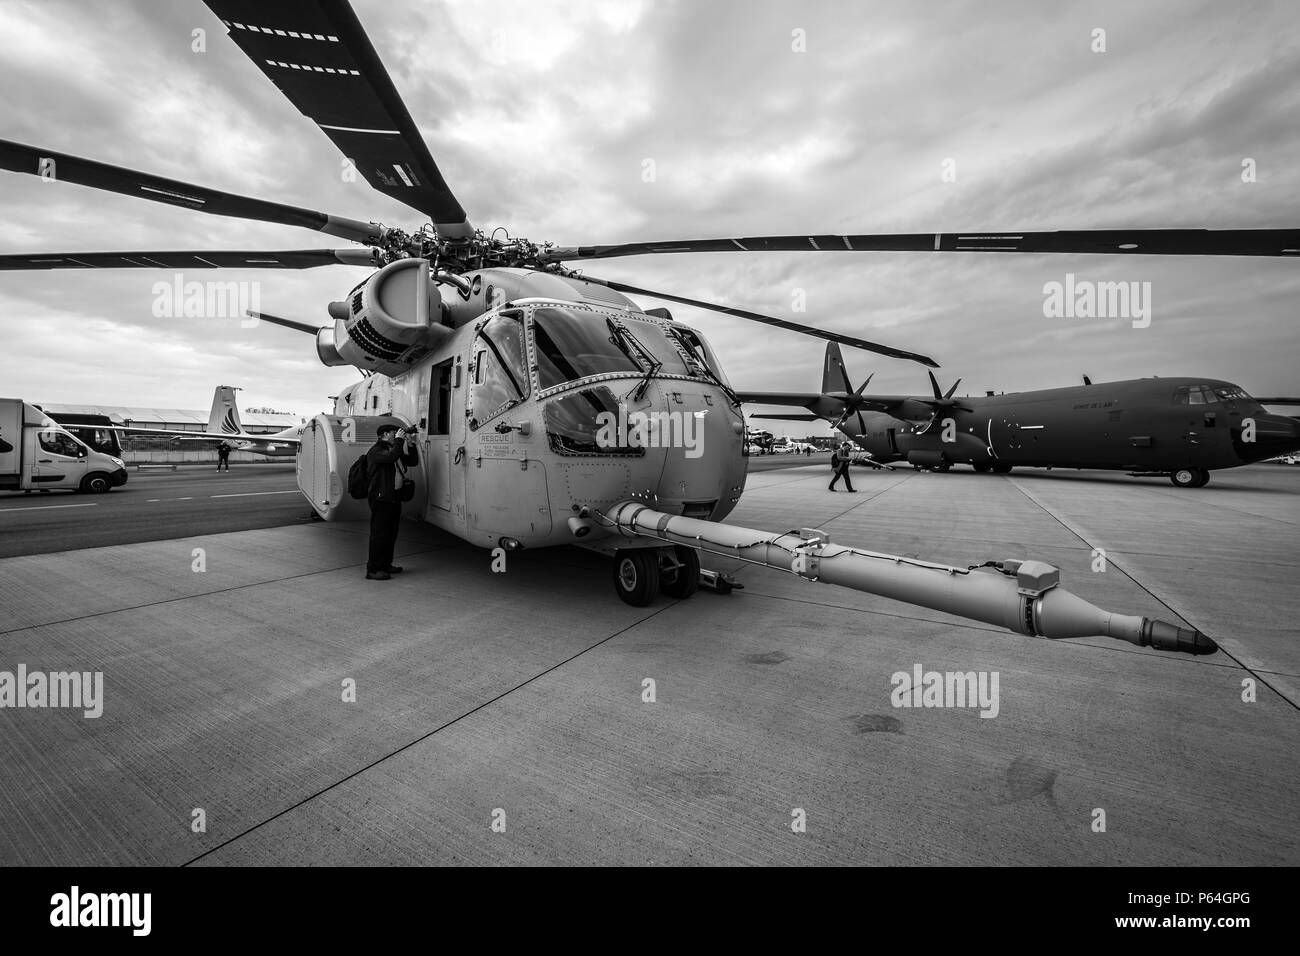 Heavy-lift cargo helicopter Sikorsky CH-53K King Stallion by United States Marine Corps on the airfield. Exhibition ILA Berlin Air Show 2018 - Stock Image